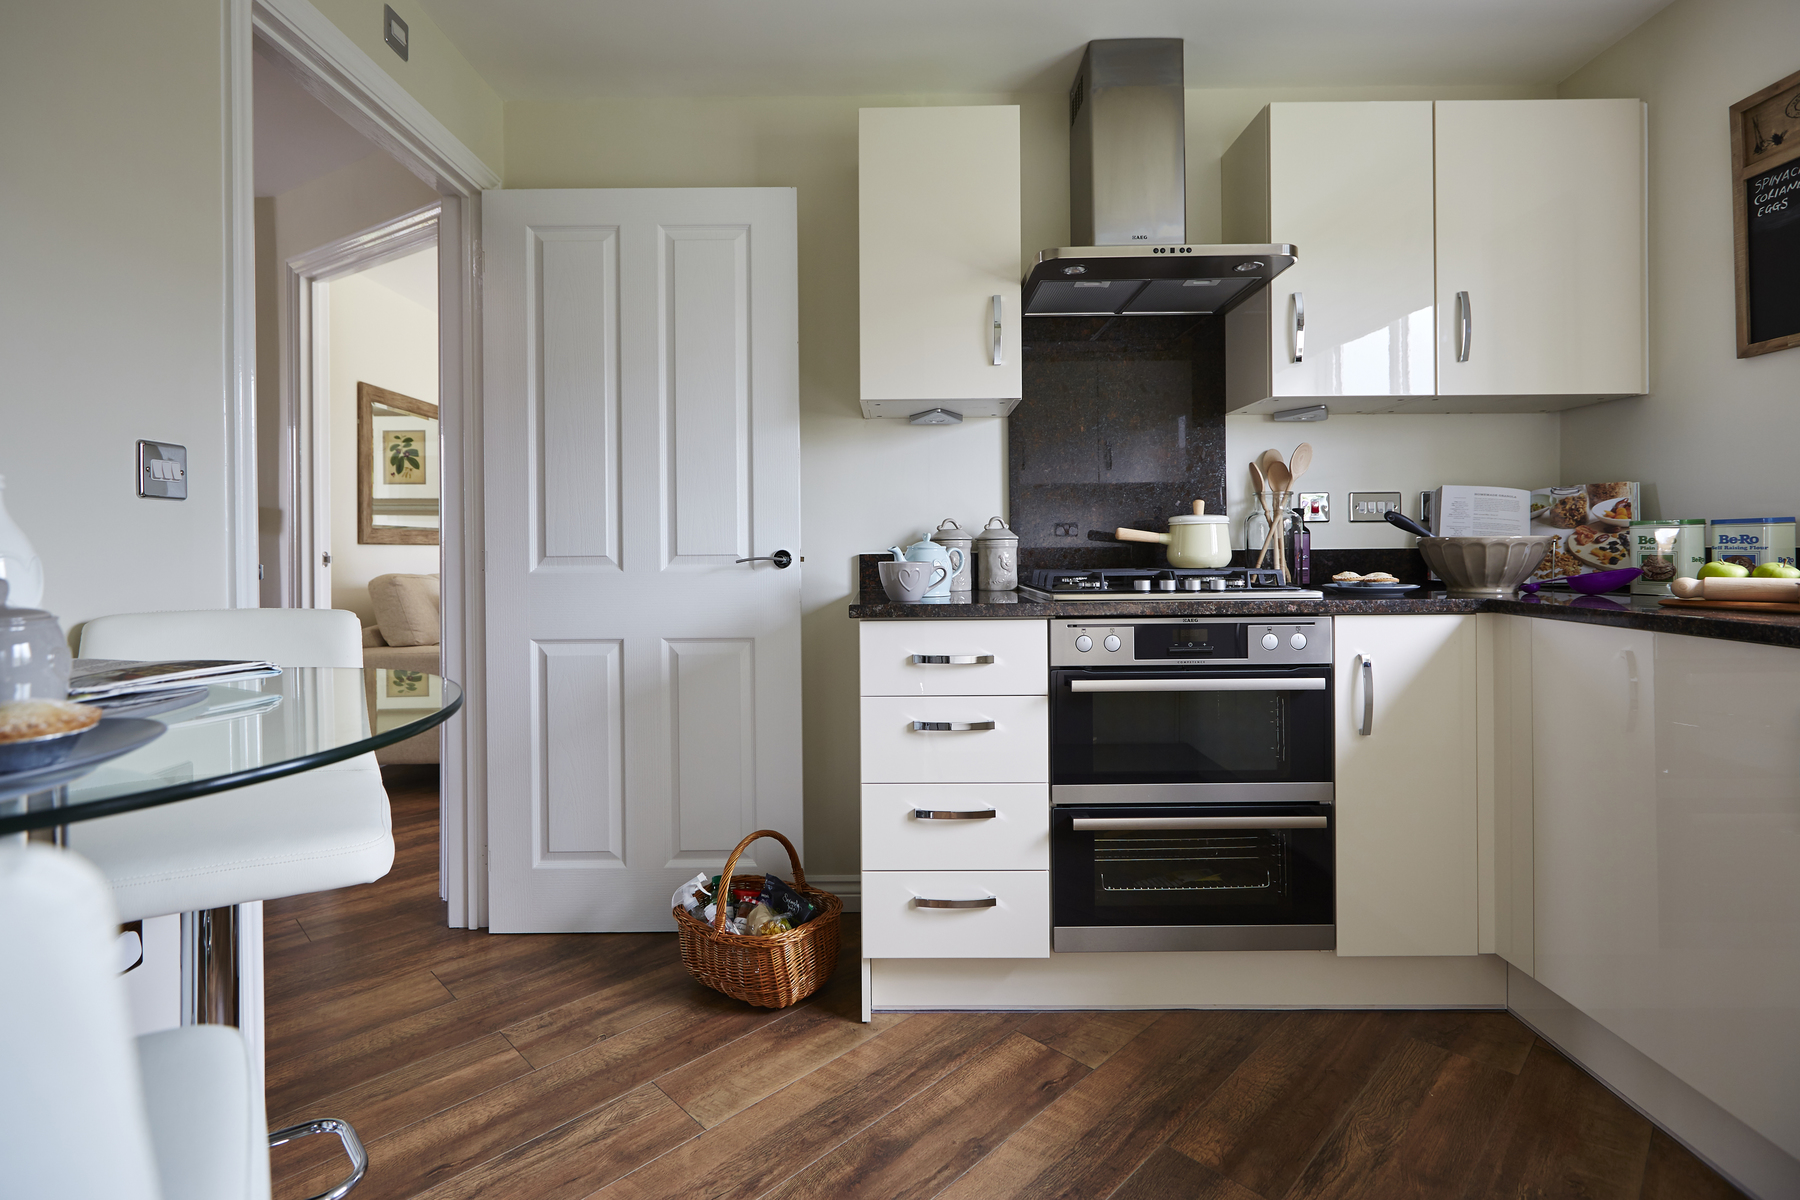 tw_man_albion_lock_sandbach_pd32_aldenham_kitchen